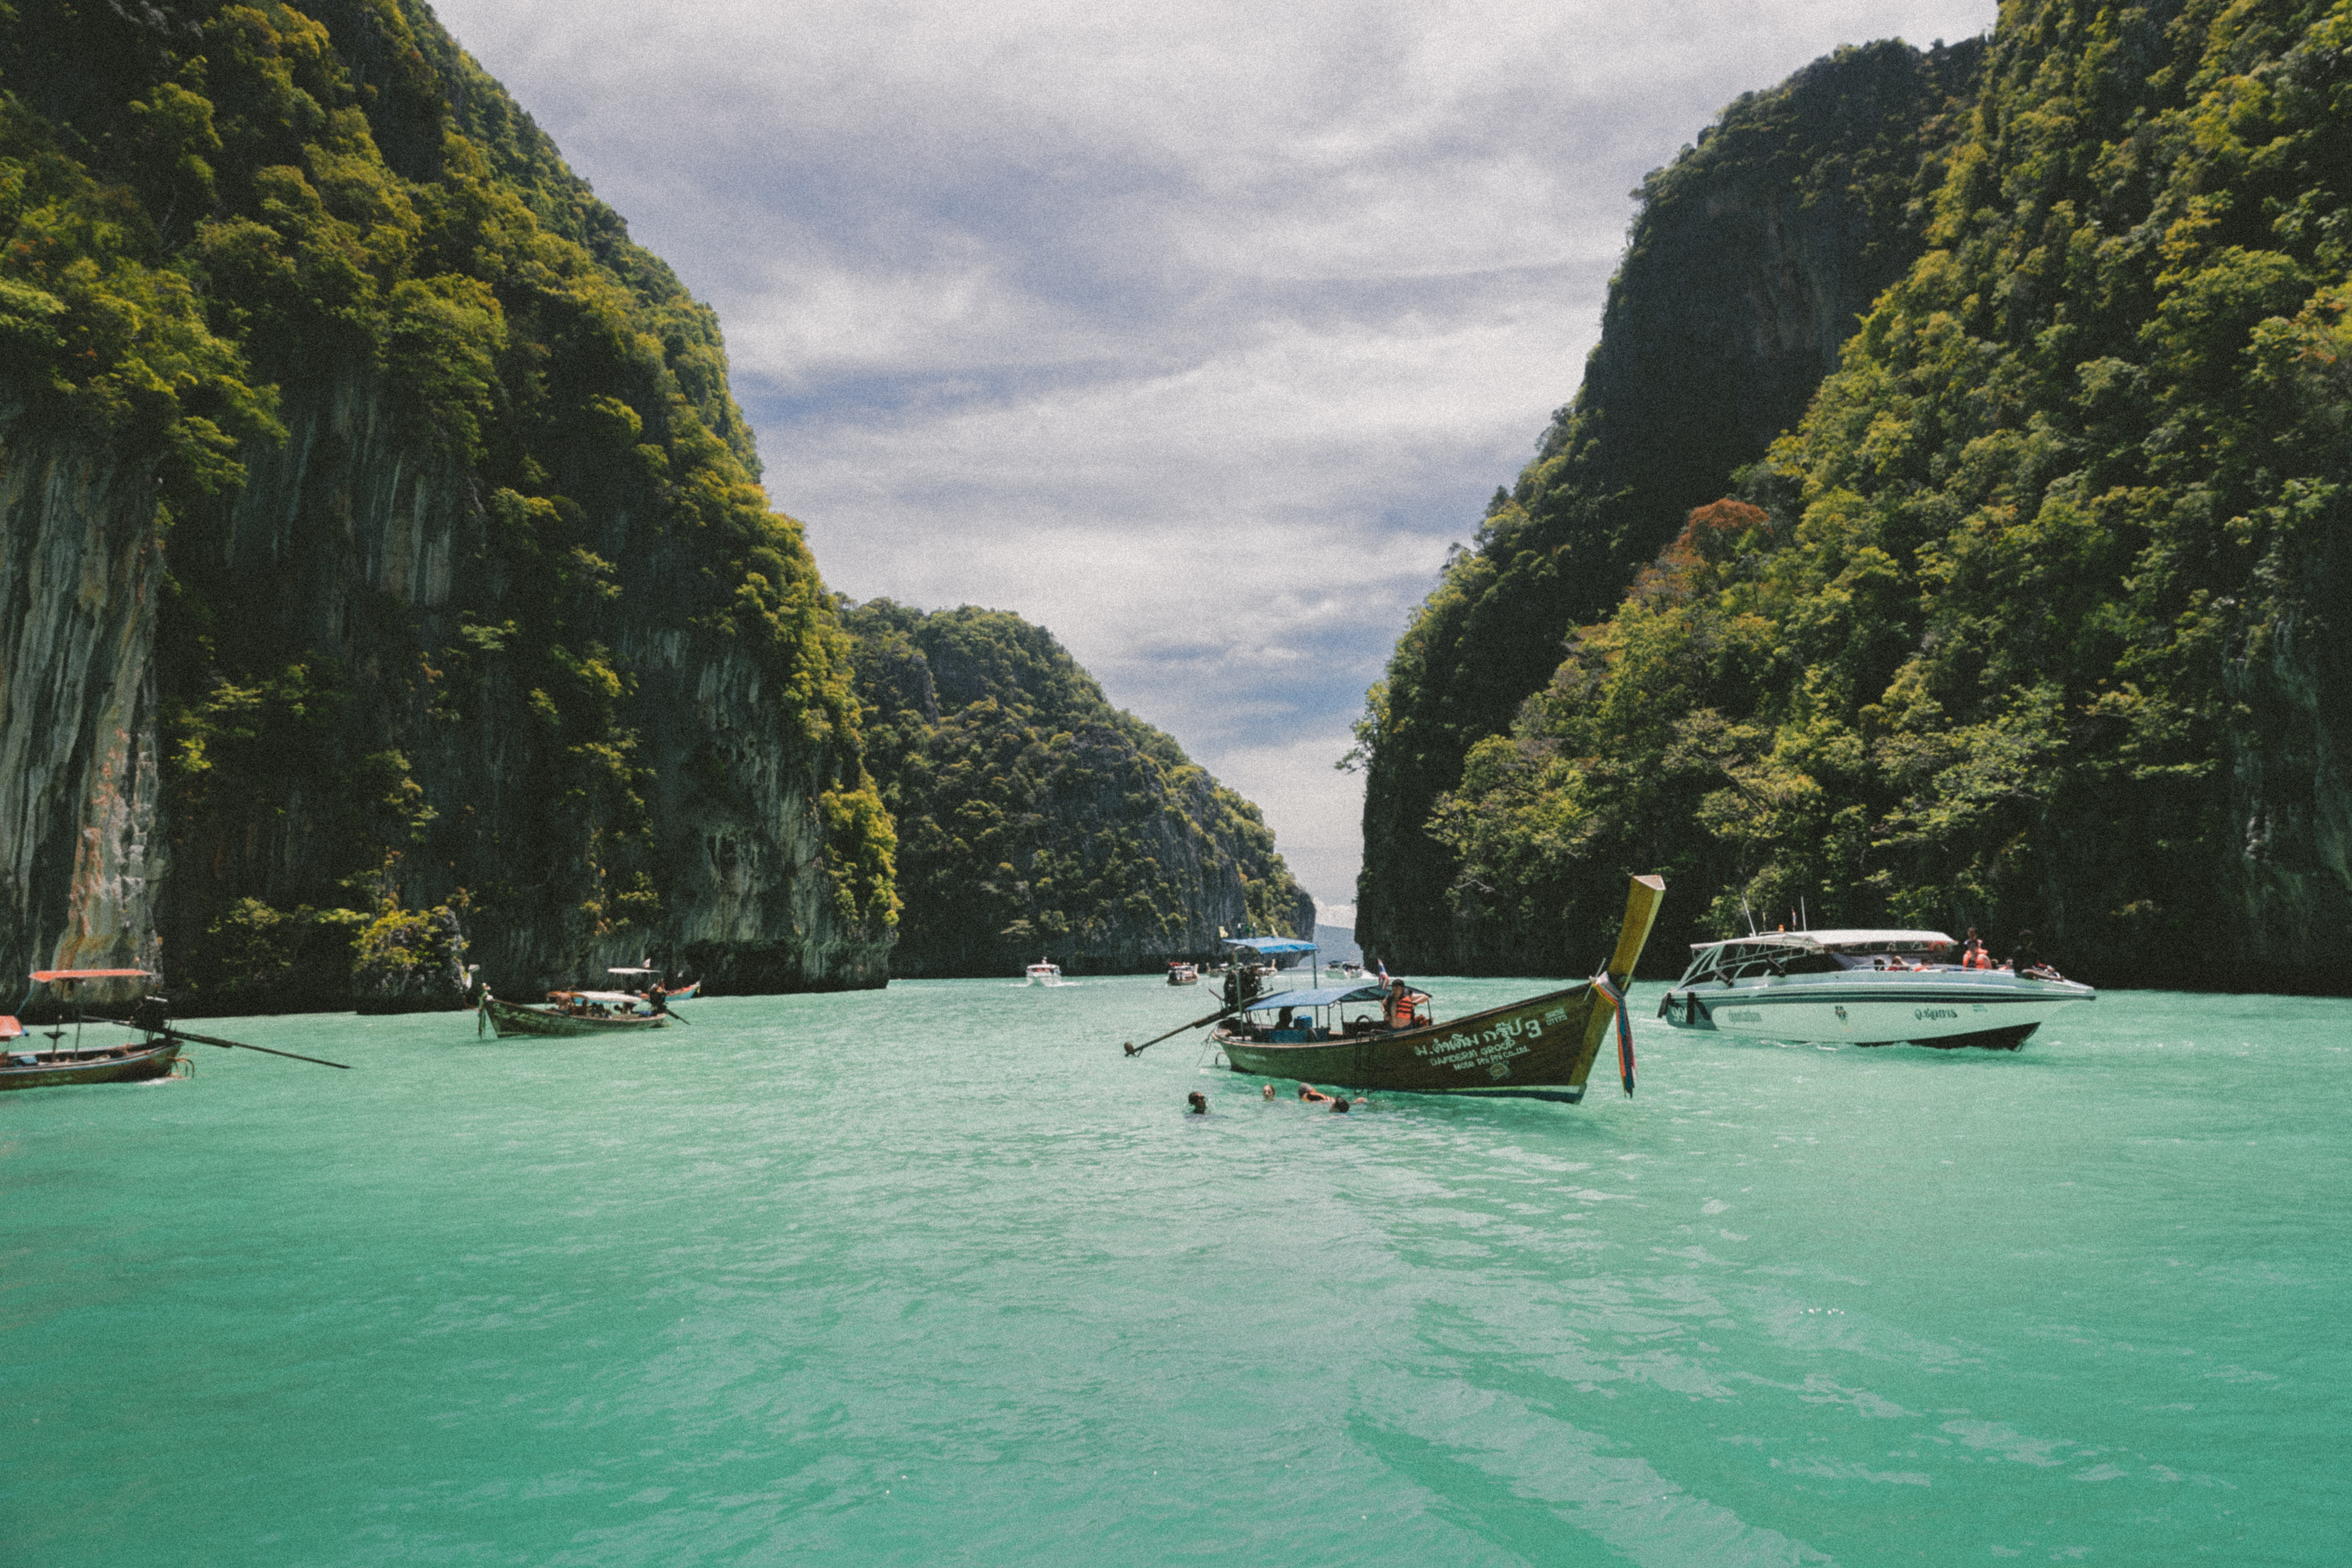 Canoes and motor powered boats driving in bluish green water under mountains.